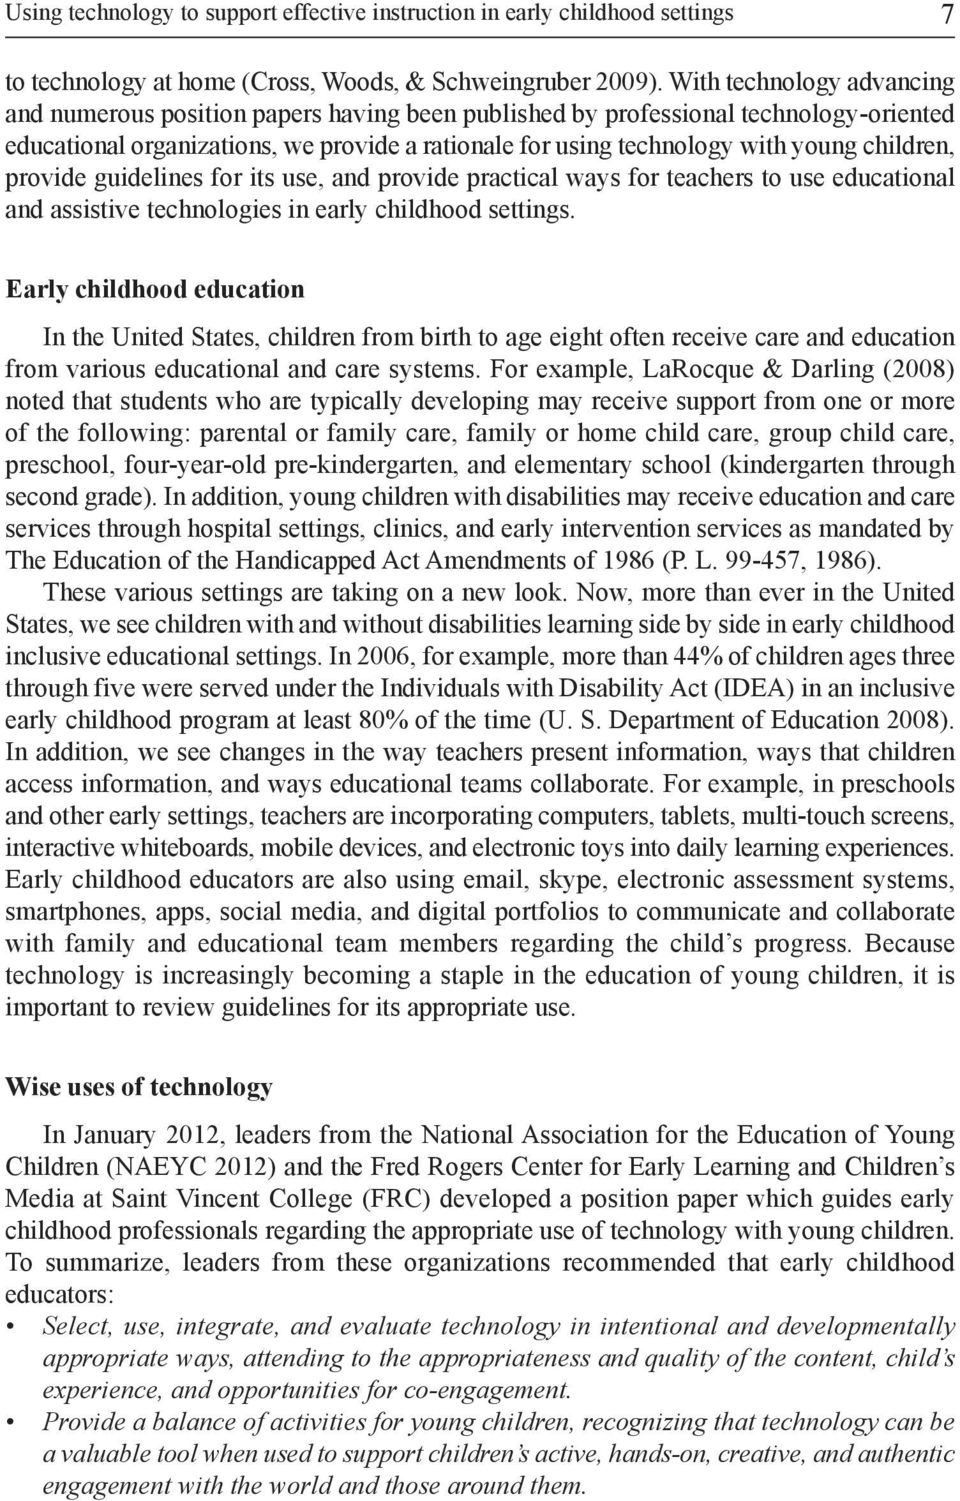 children, provide guidelines for its use, and provide practical ways for teachers to use educational and assistive technologies in early childhood settings.